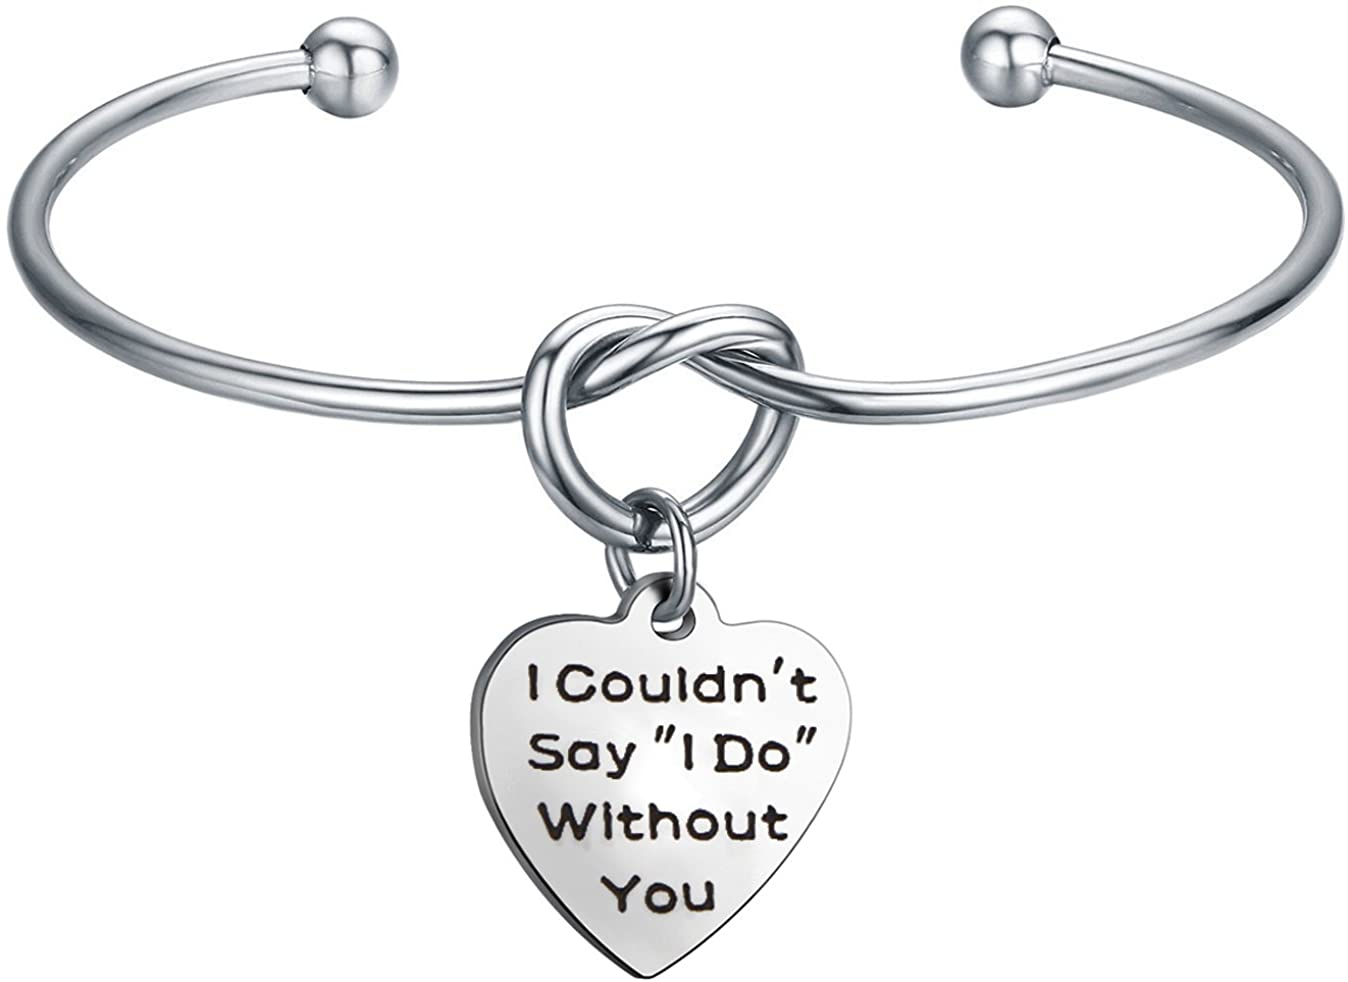 QIIER I Couldn't Say I Do Without You Bridesmaid Gift Love Knot Bangle Bracelet Tie The Knot Cuff Bangle for Bridesmaid Flower Girl